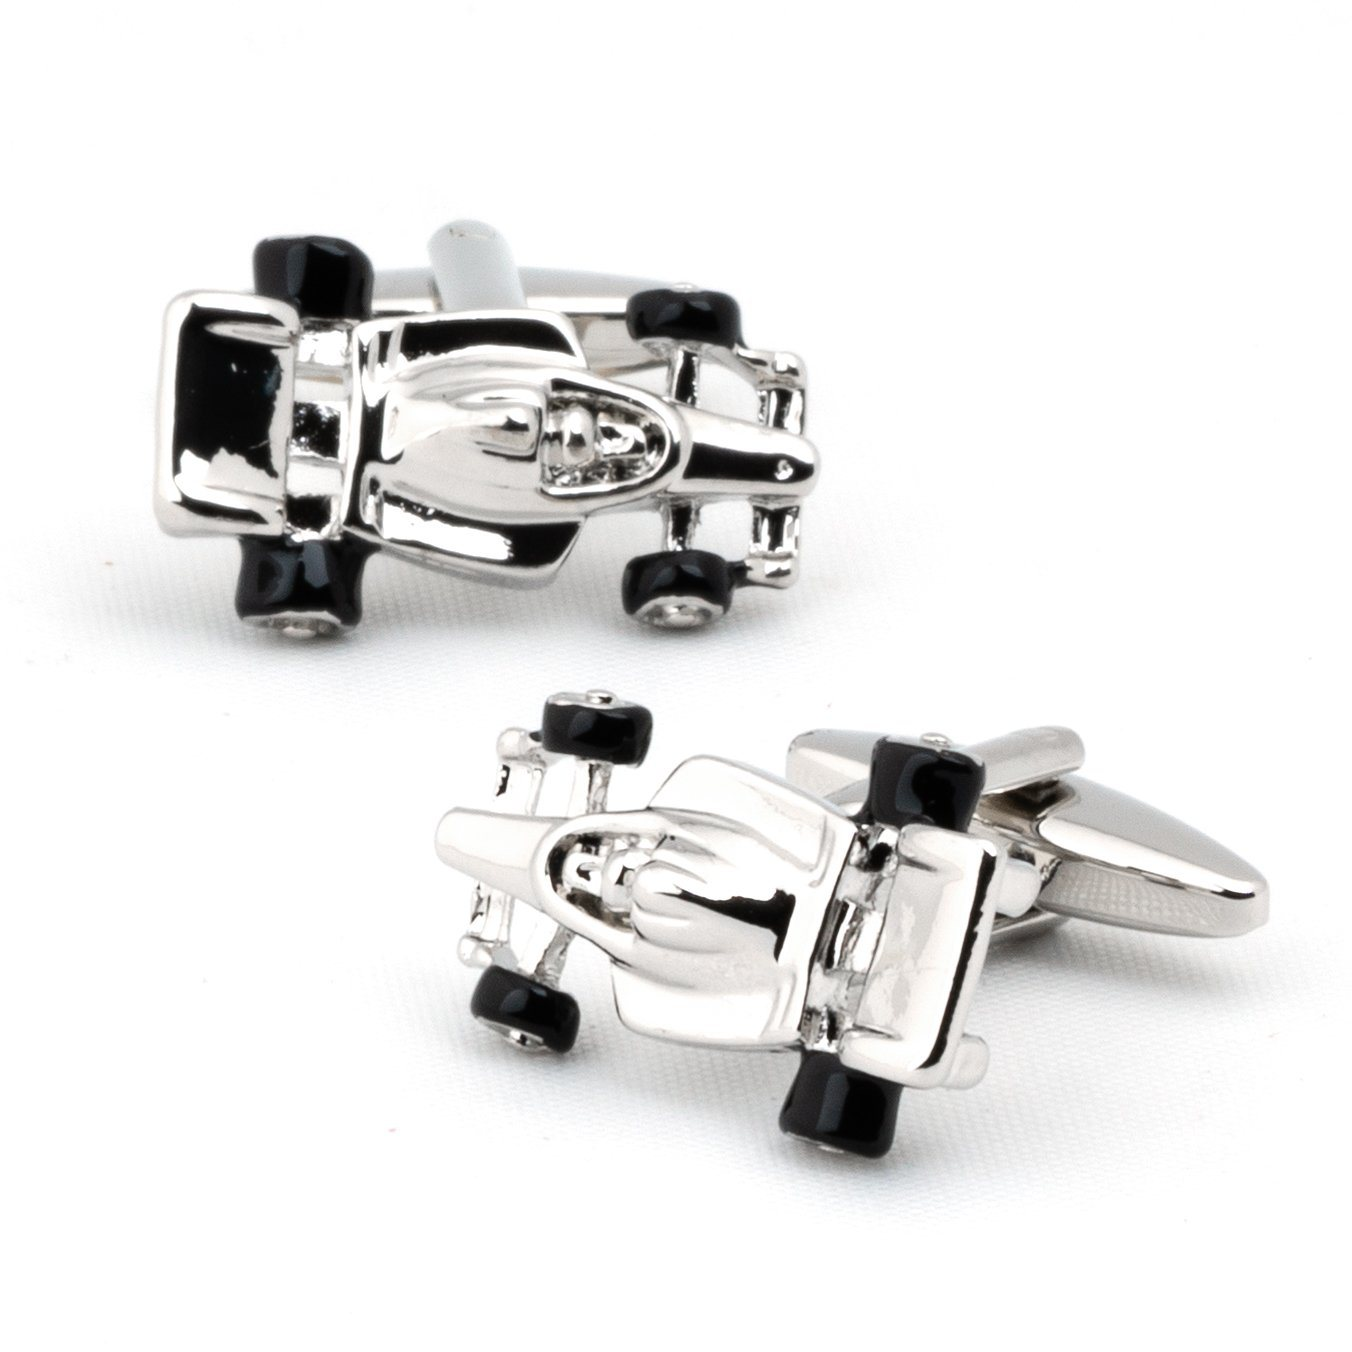 F1 Car Cufflinks Novelty Cufflinks Clinks Australia